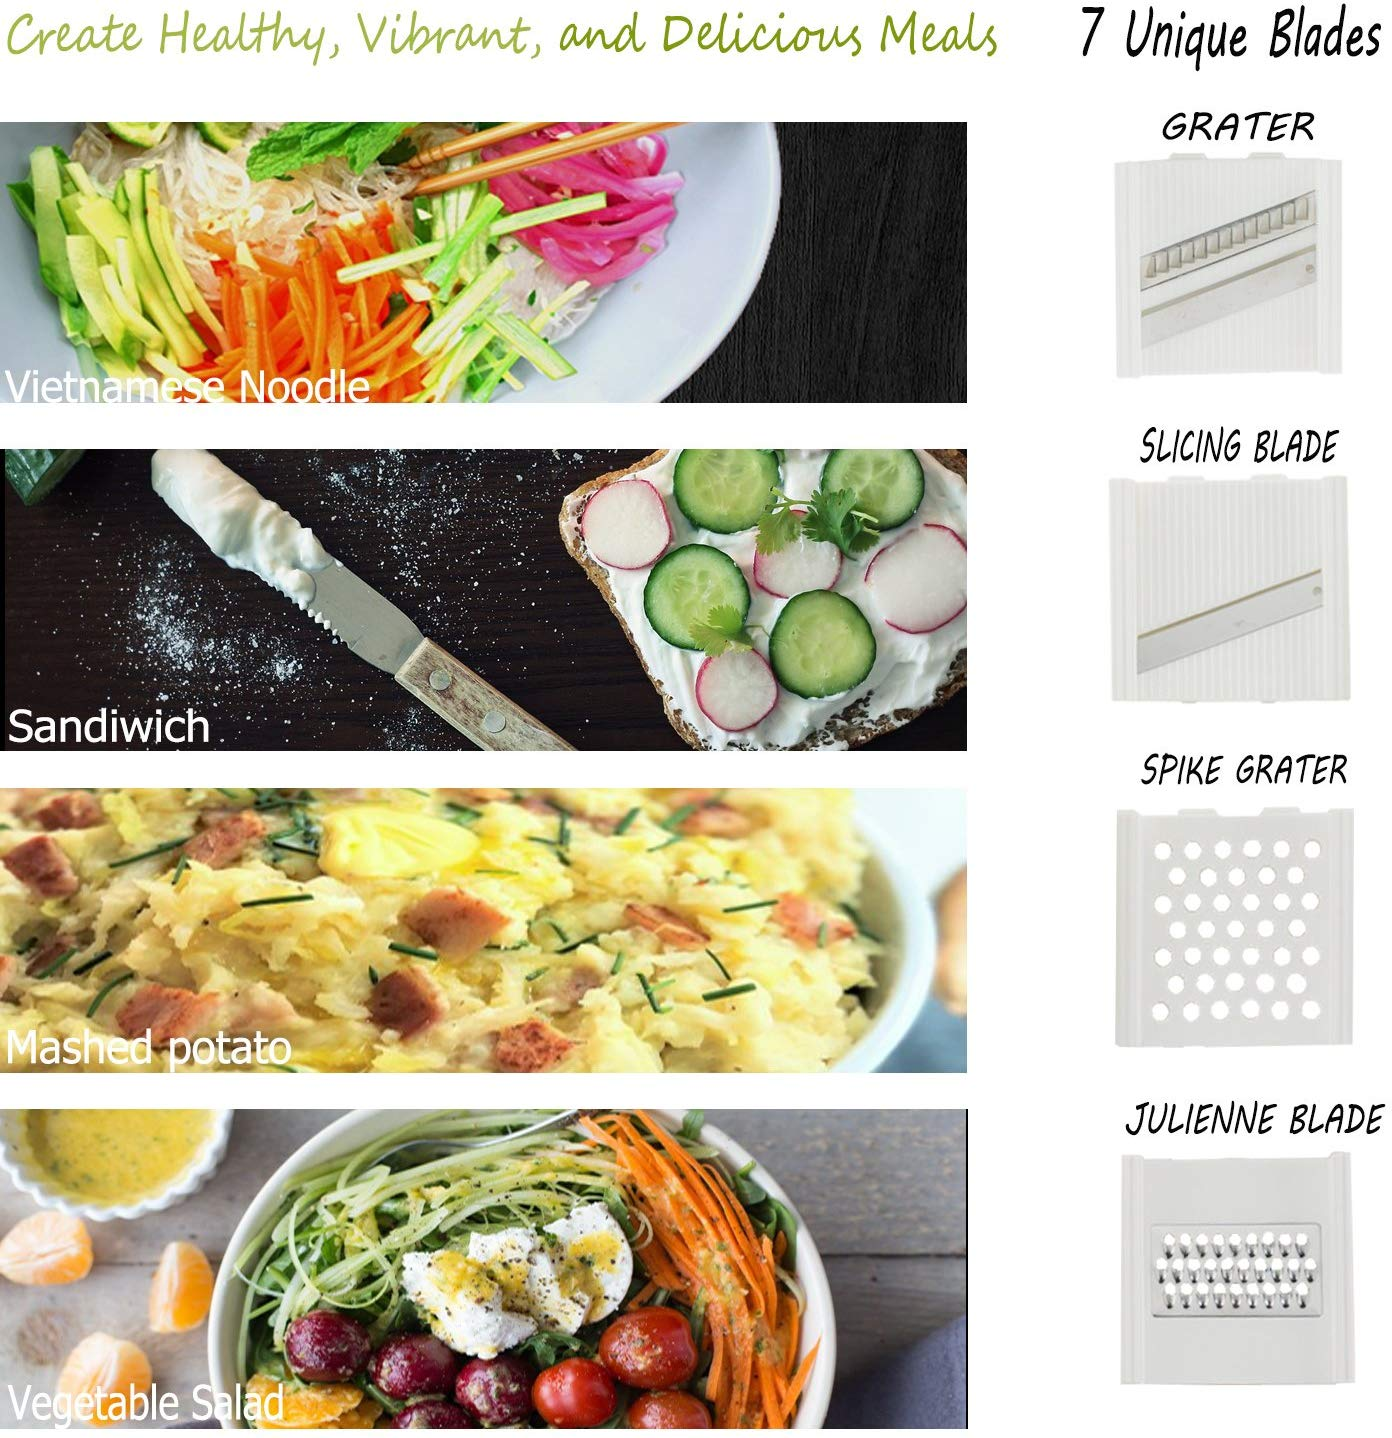 Manual Vegetable Slicer Dicer Onion Chopper 7 in 1 Hand-Powered Grater Cutter Set for Fruit Cucumber Carrot Potato with 7 Stainless Steel Blades Hand Protector and Cleaning Tool